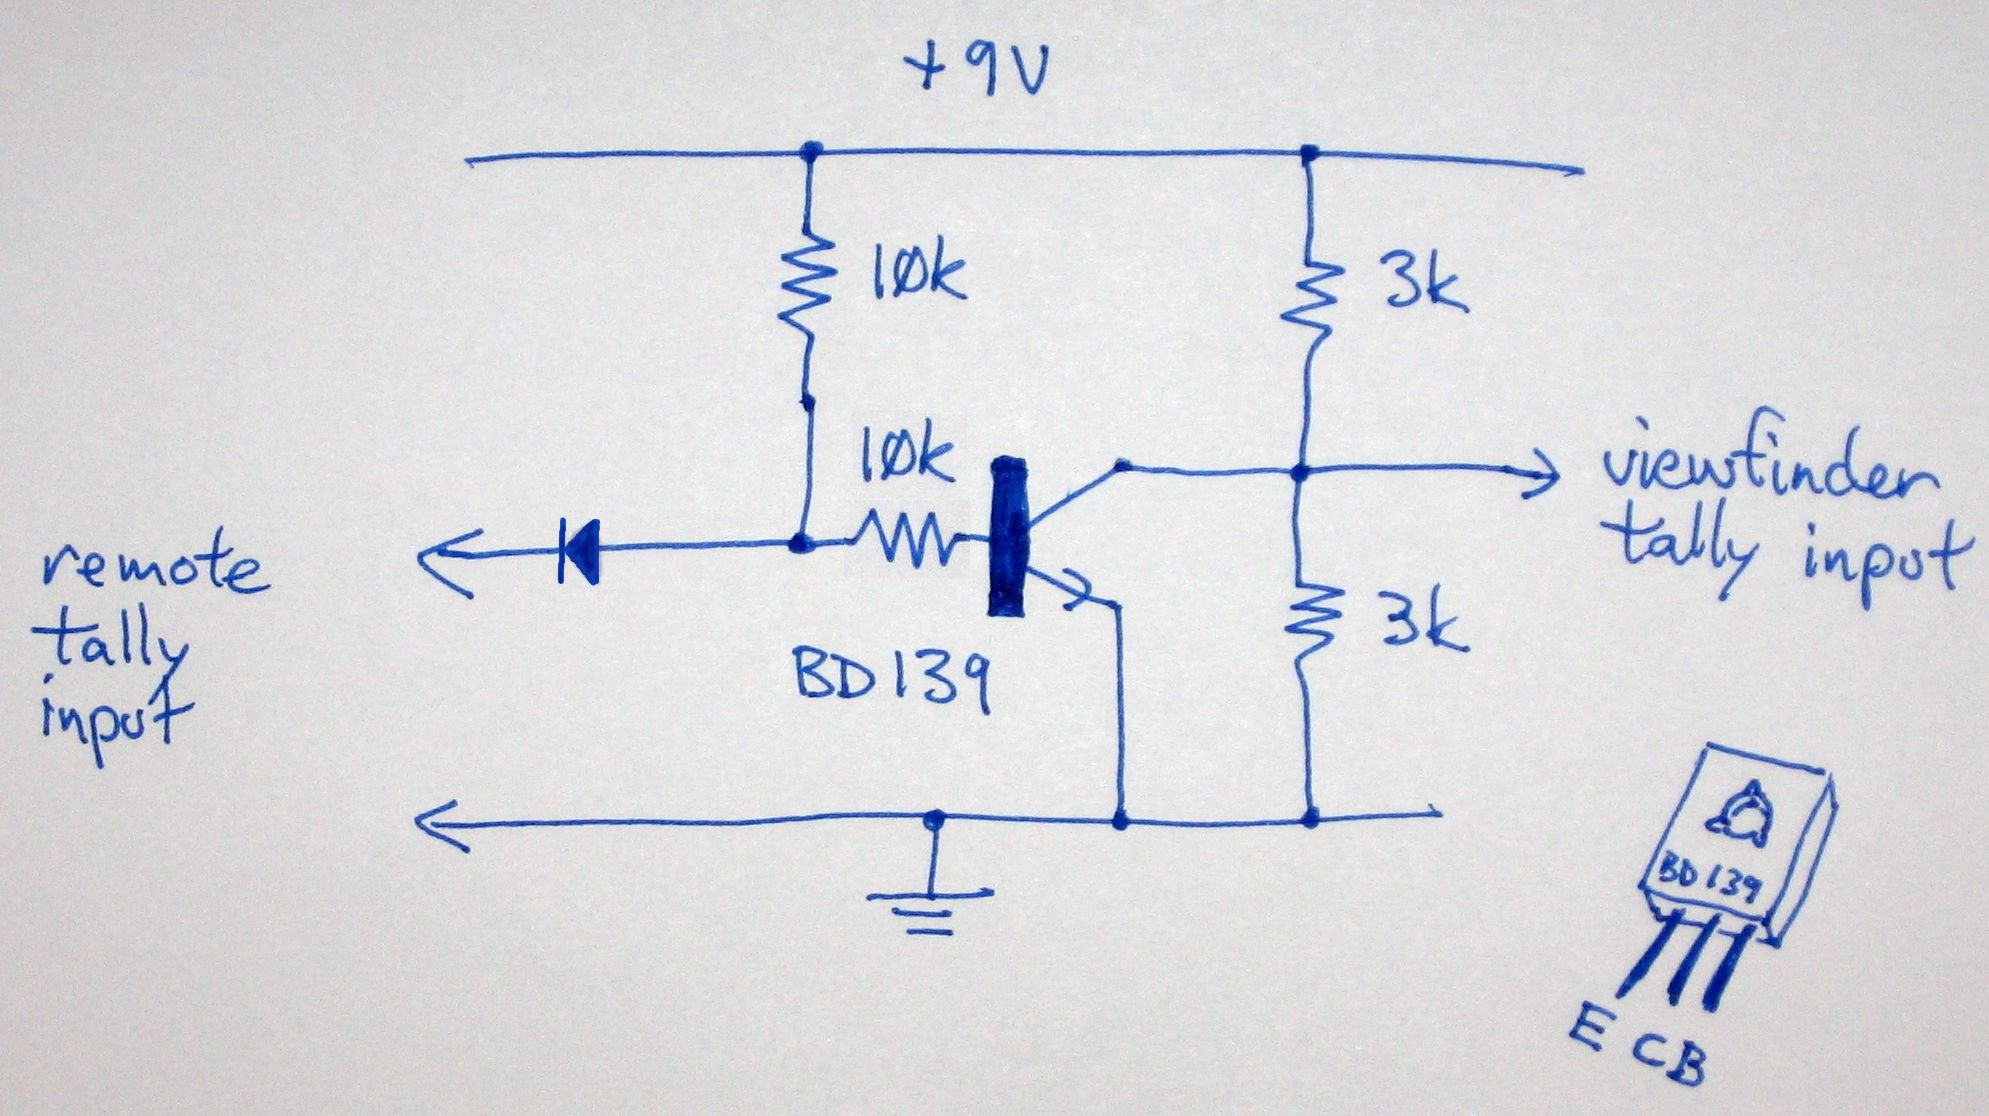 biner Box Evolution moreover 30 69007 further Homemade Dc Motor Controller furthermore Industrial Electrical Wiring Diagrams moreover Outlet Tester Circuit Diagram. on simple wiring circuits